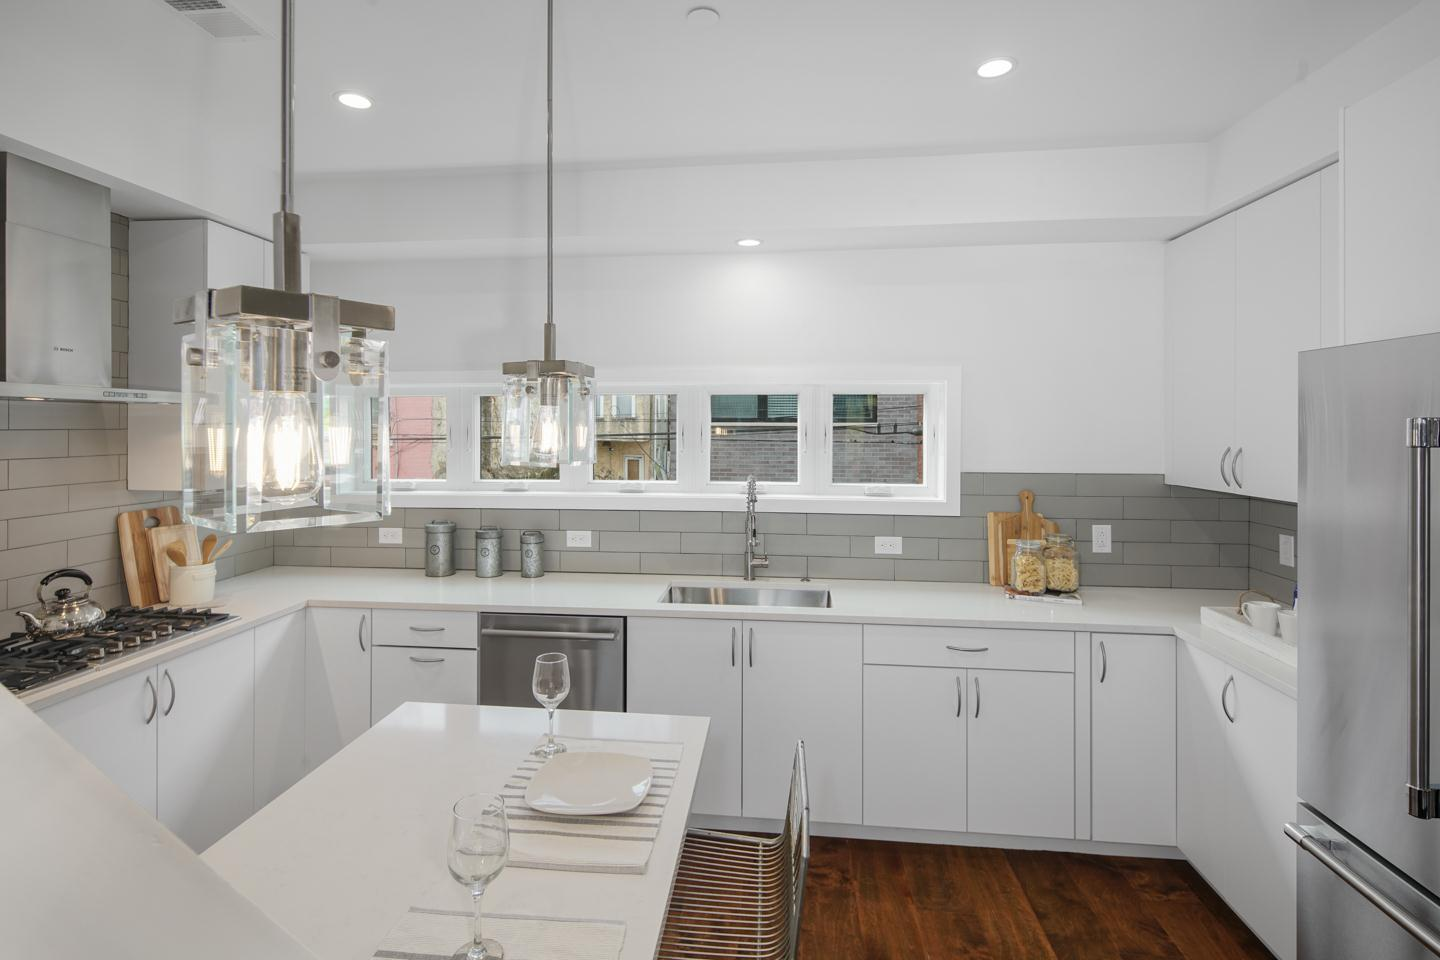 Kitchen featured in the Howard Townhome By PRDC Properties in Philadelphia, PA